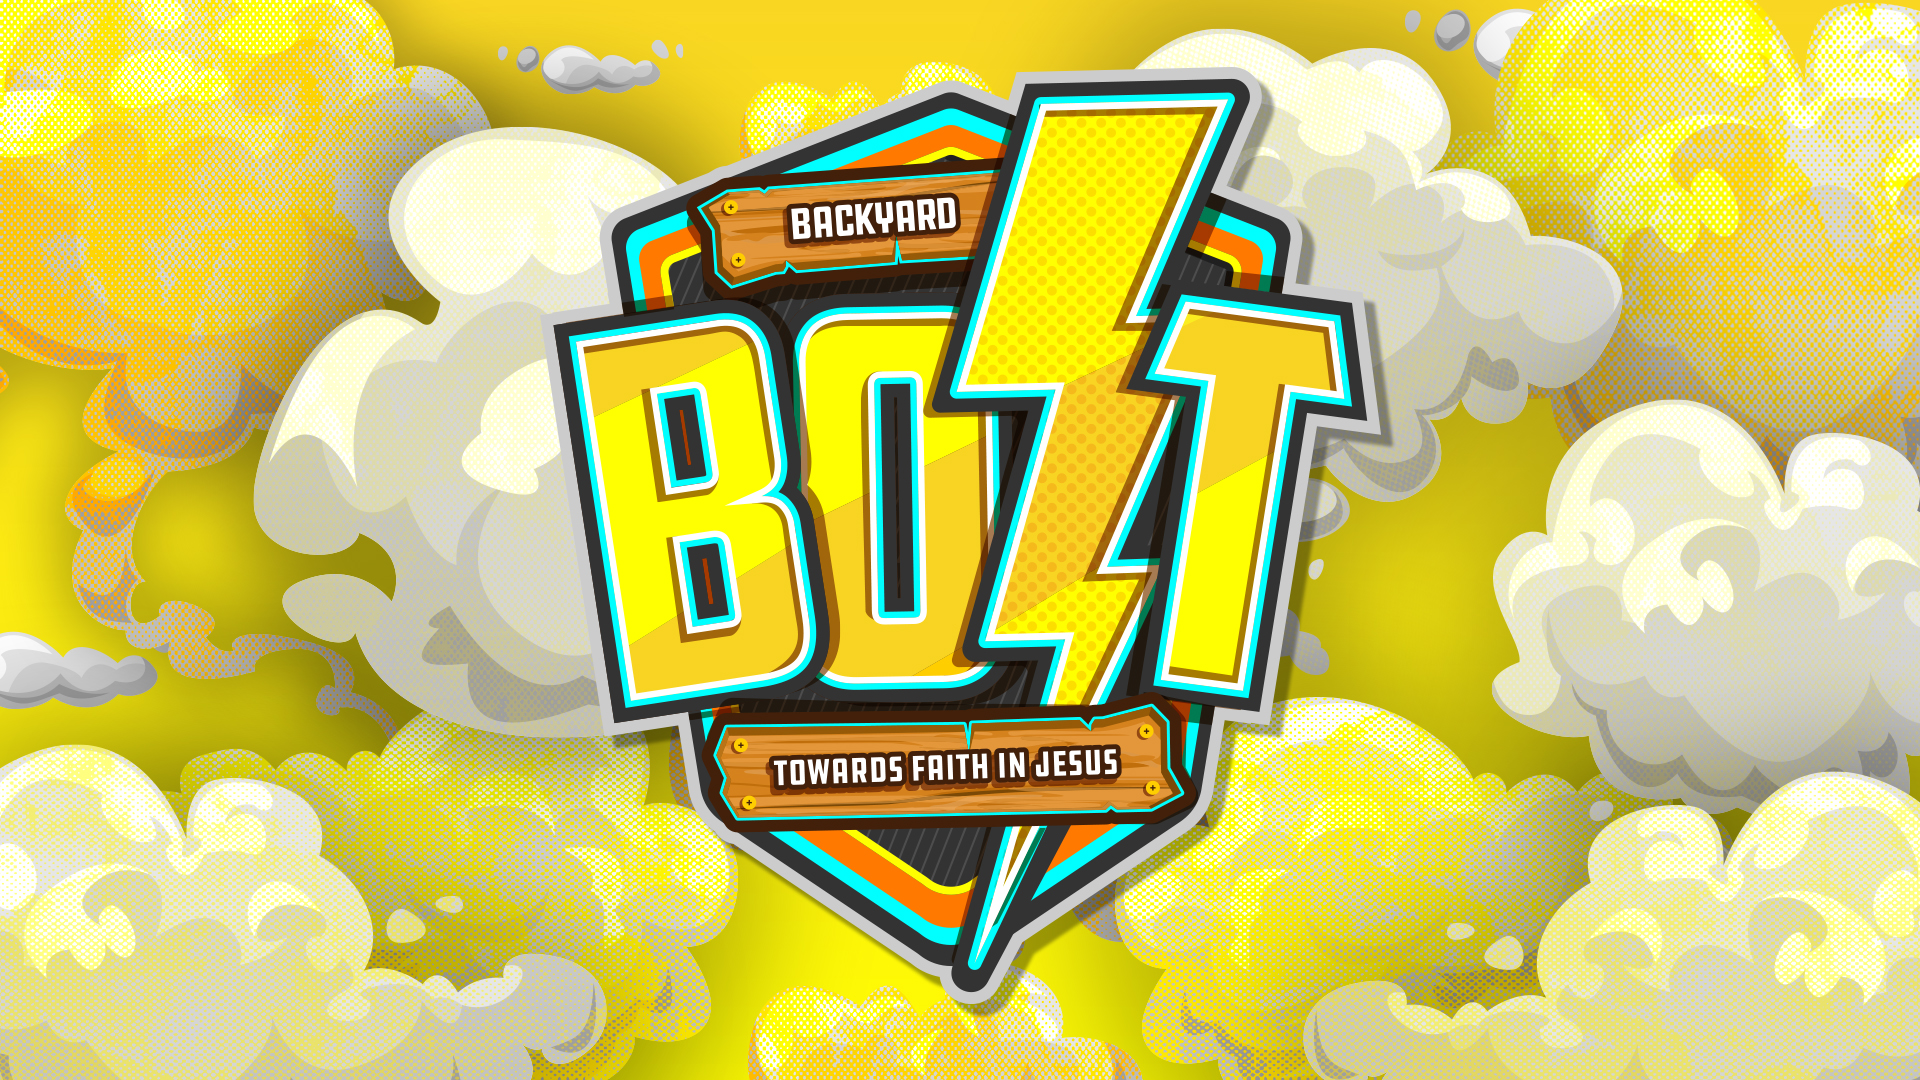 BOLT logo with background